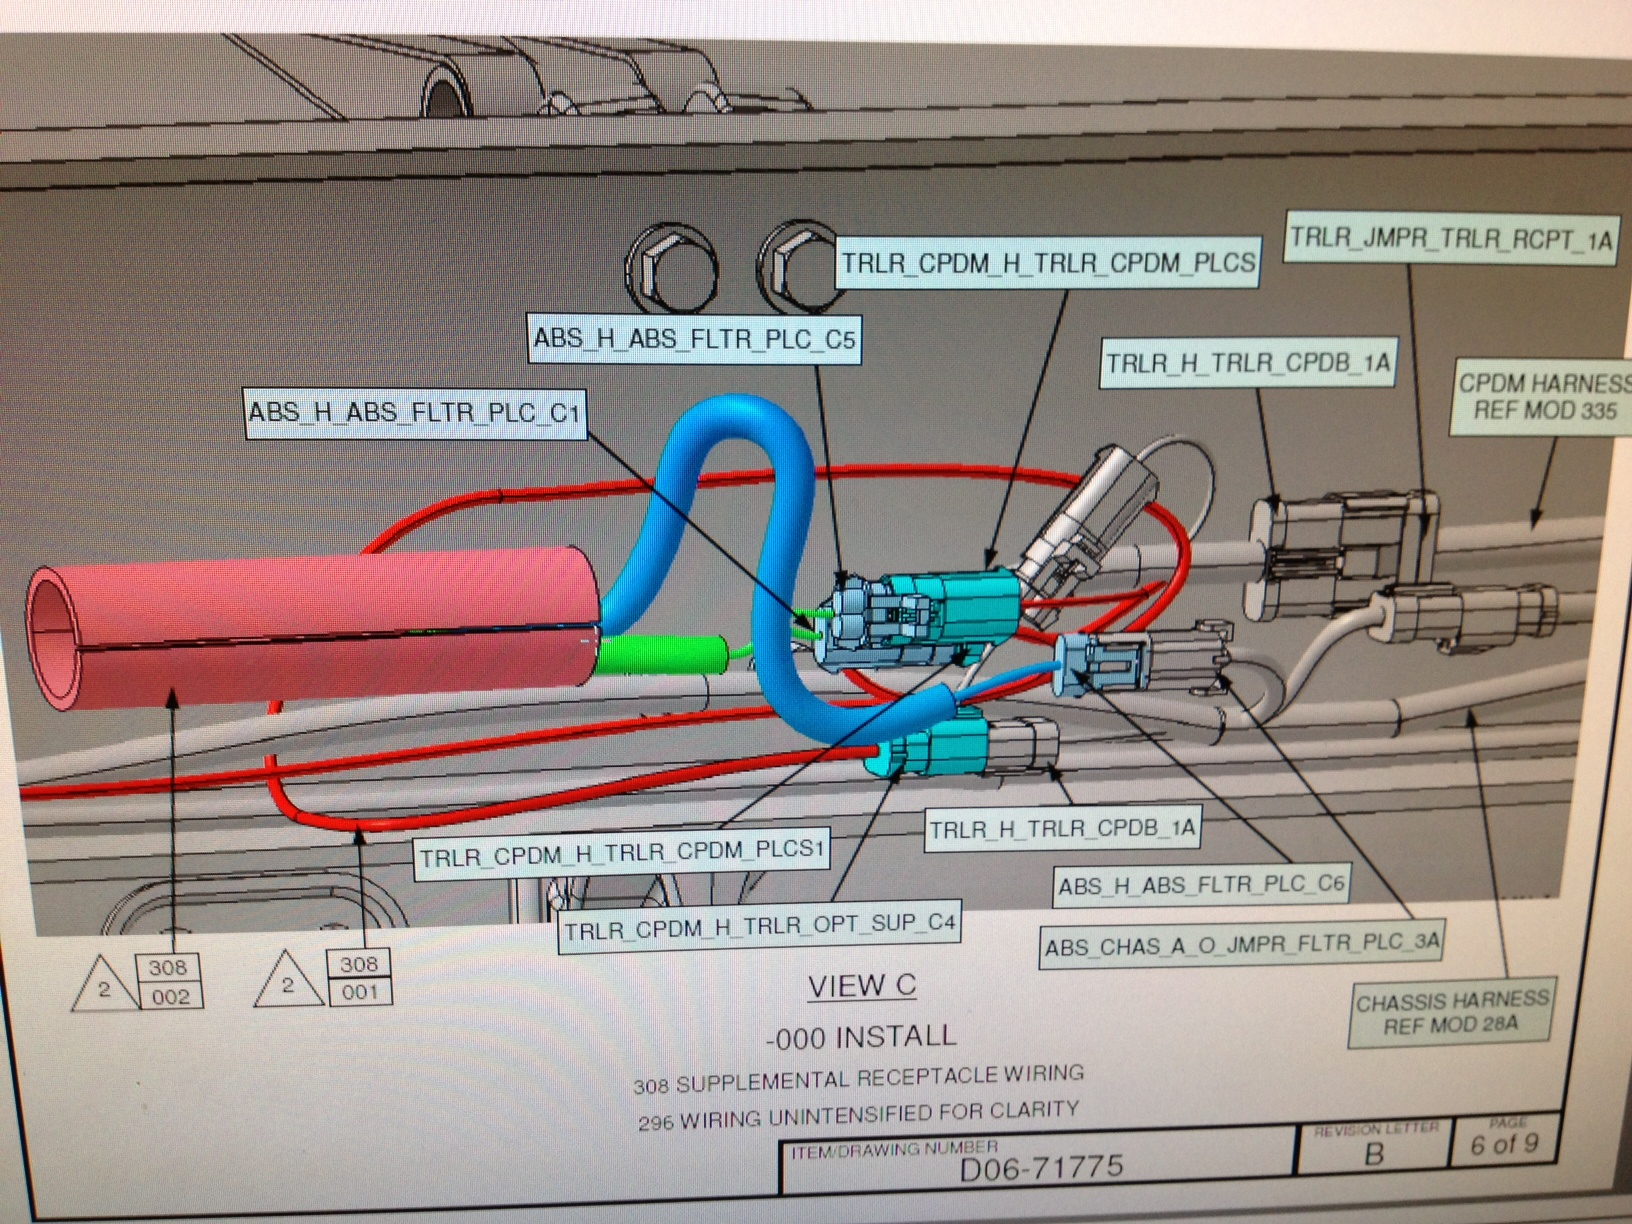 Freightliner Electrical Diagrams moreover Discussion T20449 ds551854 also 7drwq 2009 Cascadia No Rear Turn Signals No Power Trailer Light in addition Wiring Diagram Pnl additionally 4riwz Chevrolet Silverado 1500 No Power Dash Lights. on freightliner xc chassis wiring diagram